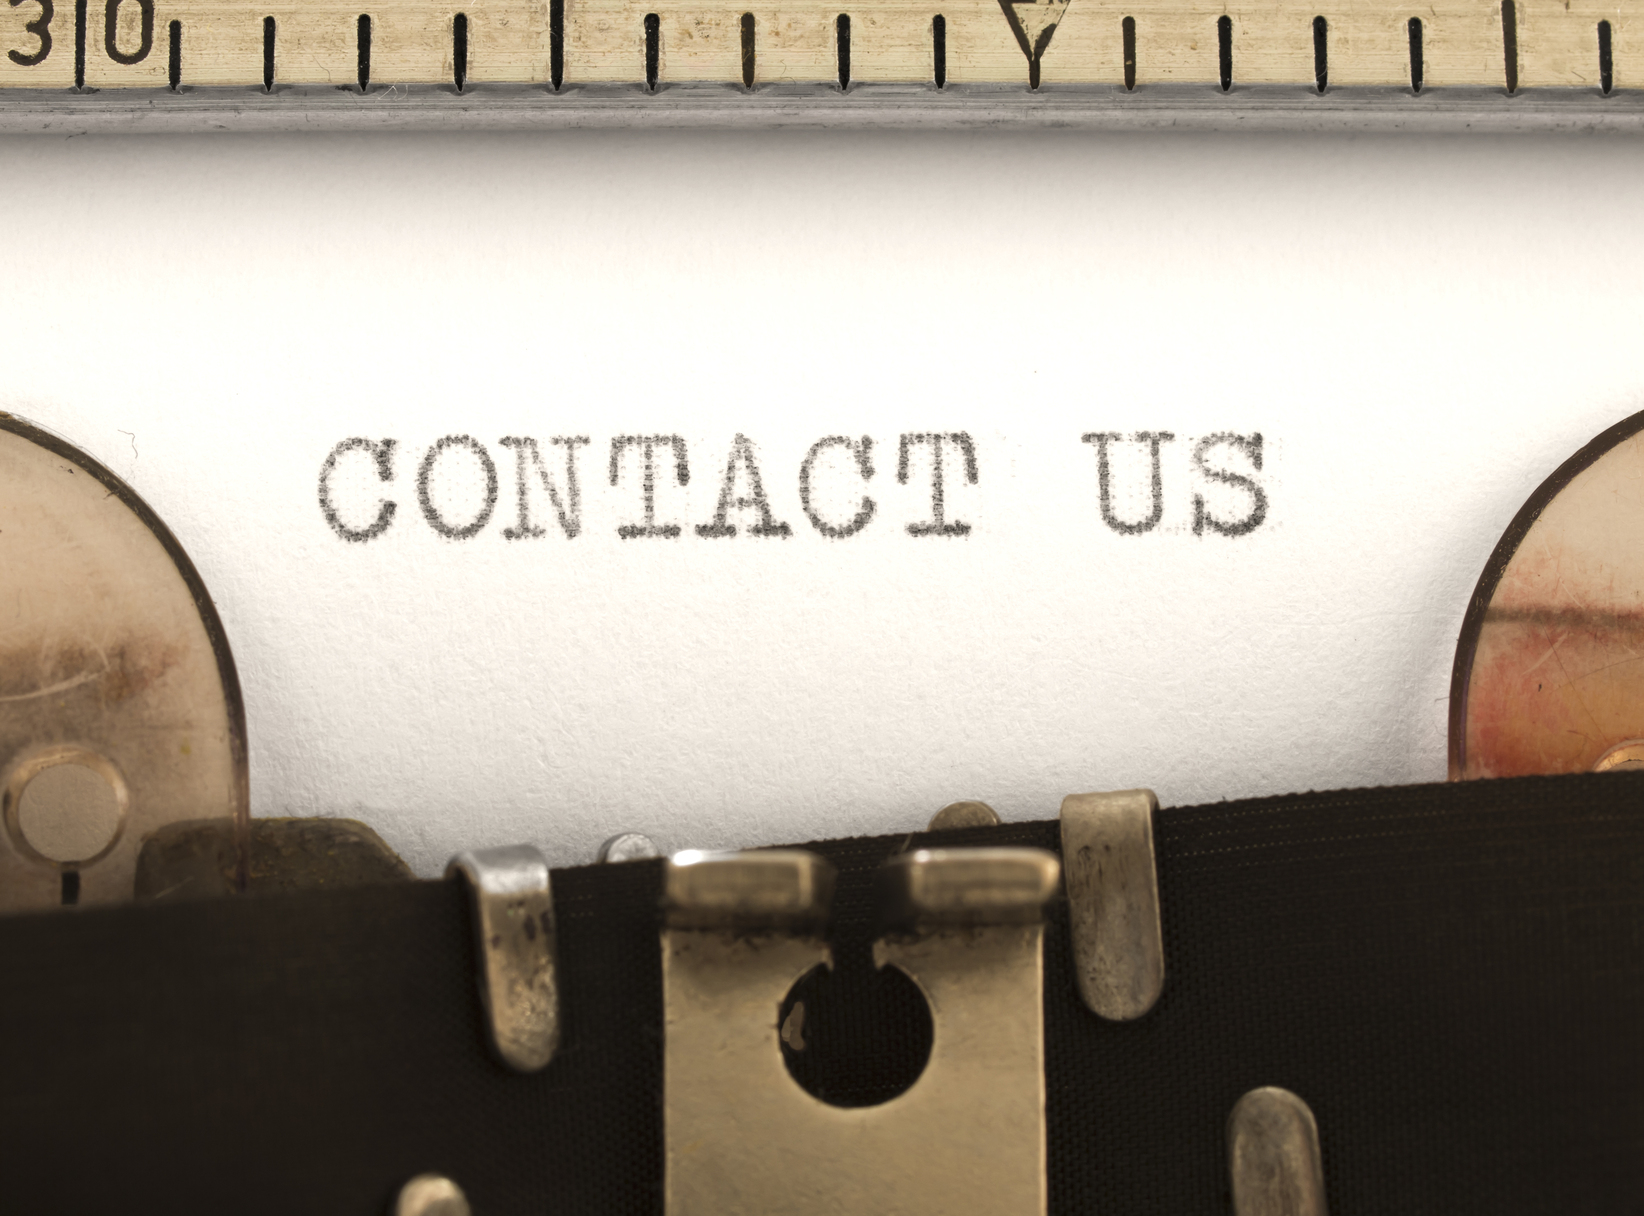 Contact Us title on the typewriter